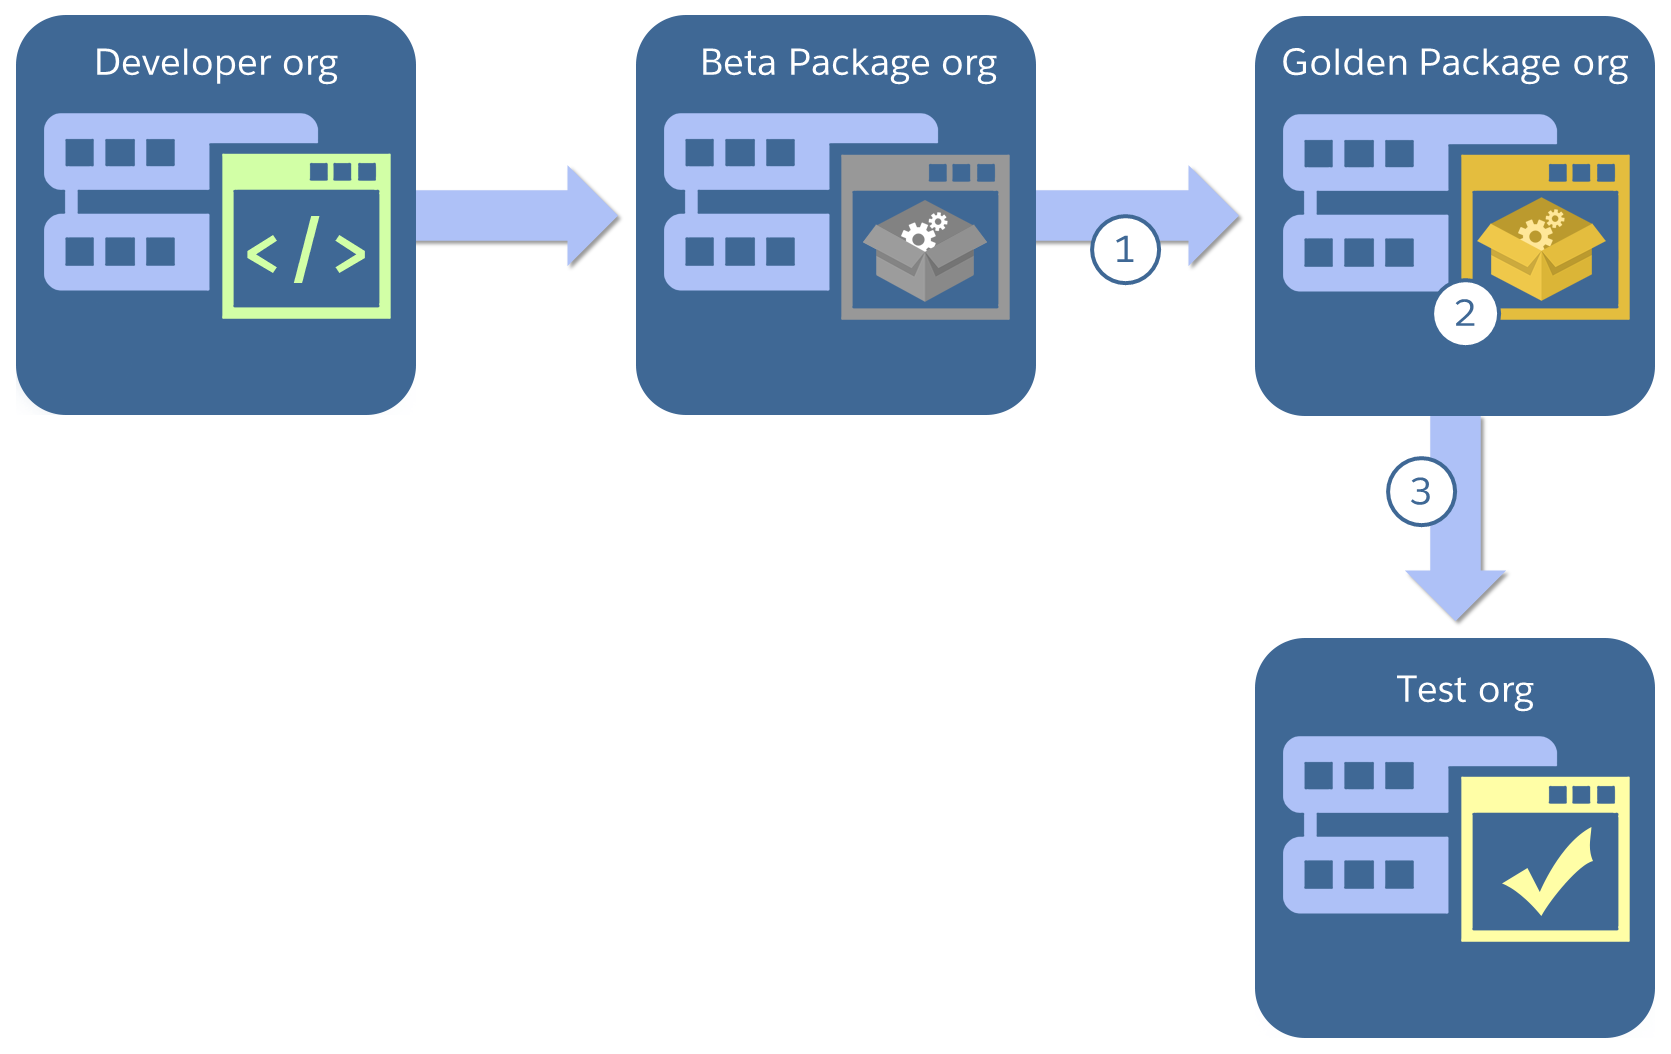 Diagram showing app going from developer org to beta package org to golden package org to test org